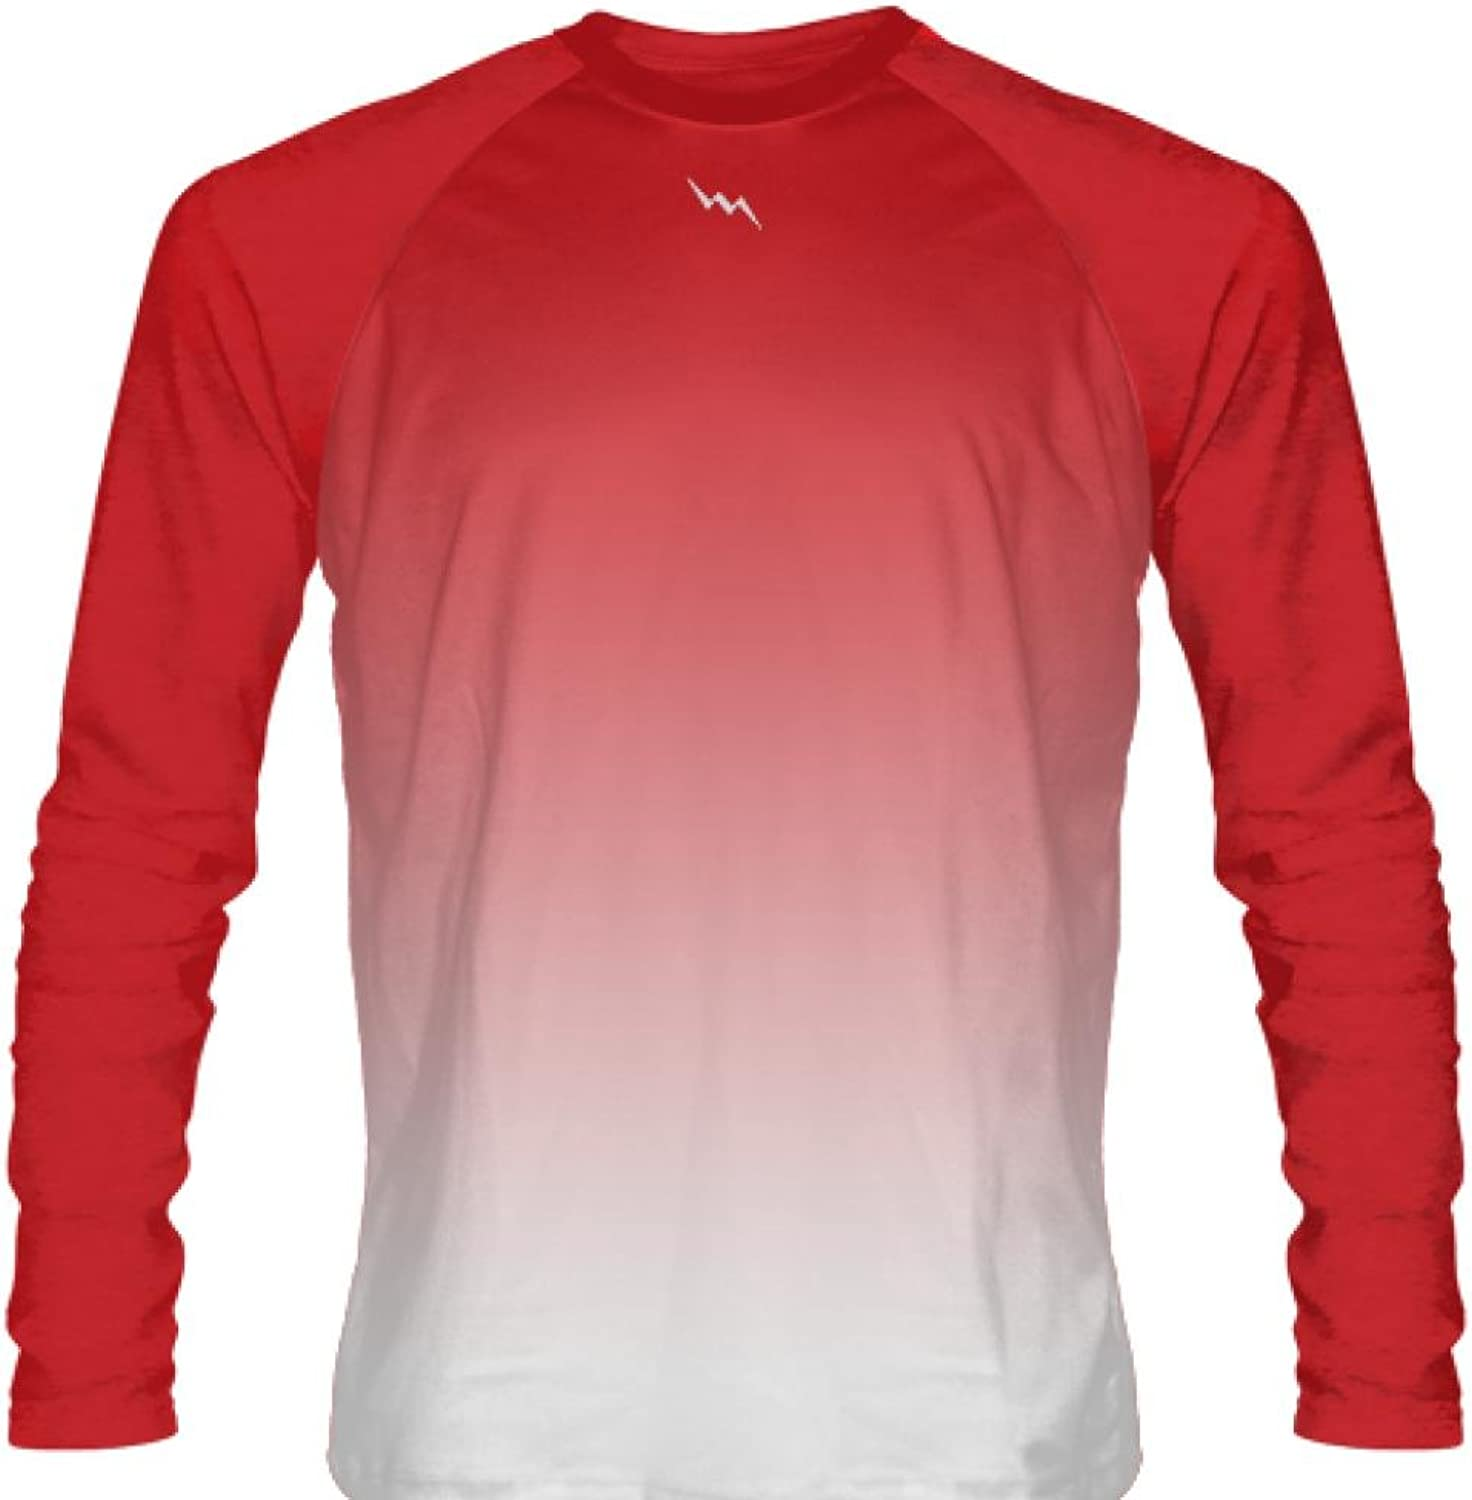 LightningWear Red Long Sleeve Lacrosse Shirts